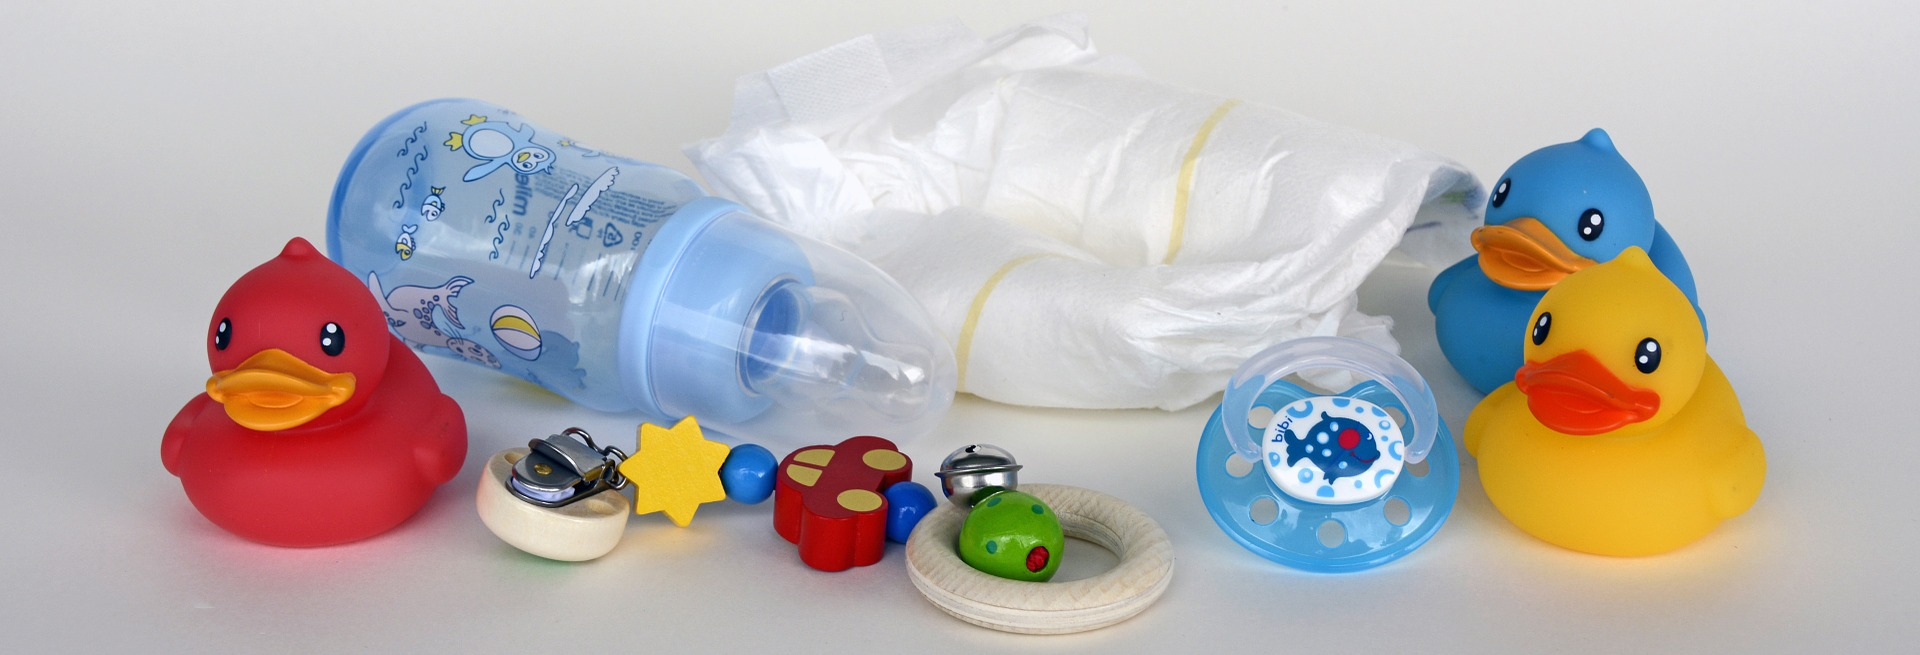 Counterfeit children's toys containing lead, mercury and phthalates, displays a real danger of fake goods.